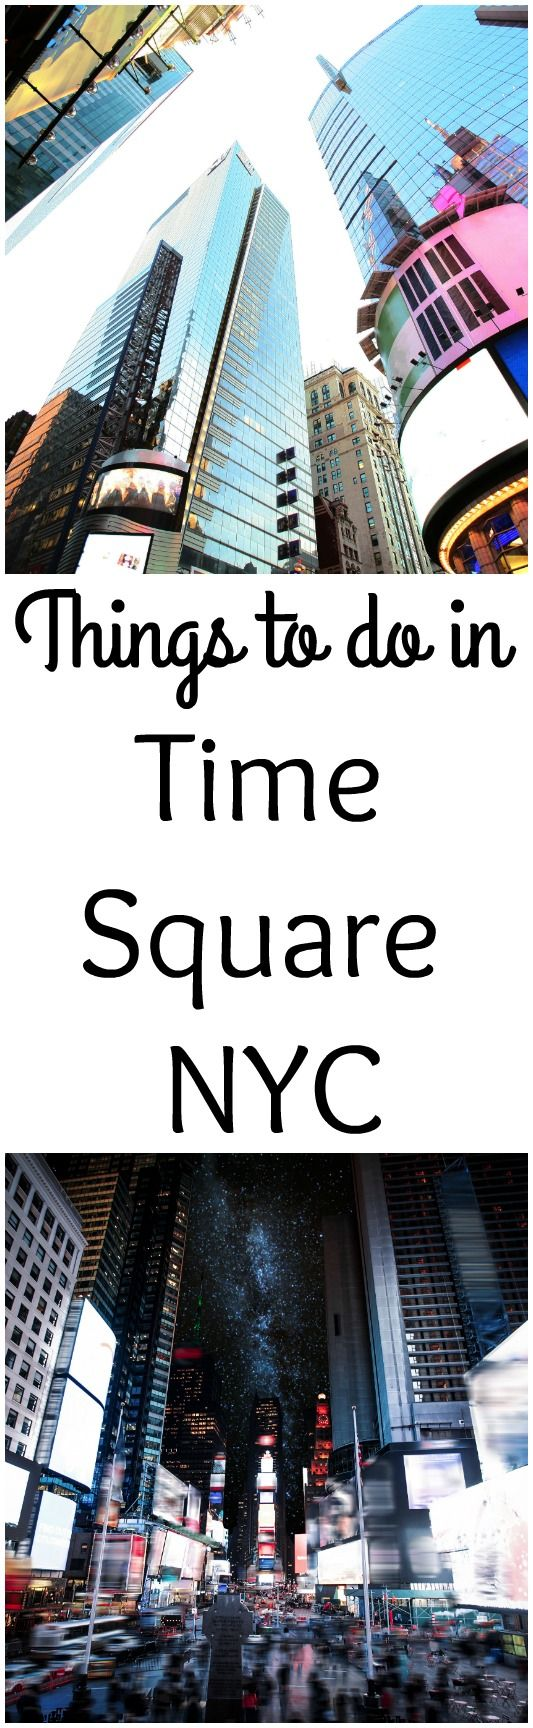 Are you visiting New York City? Visiting Time Square is a must, and that means finding things to do in Time Square in New York City